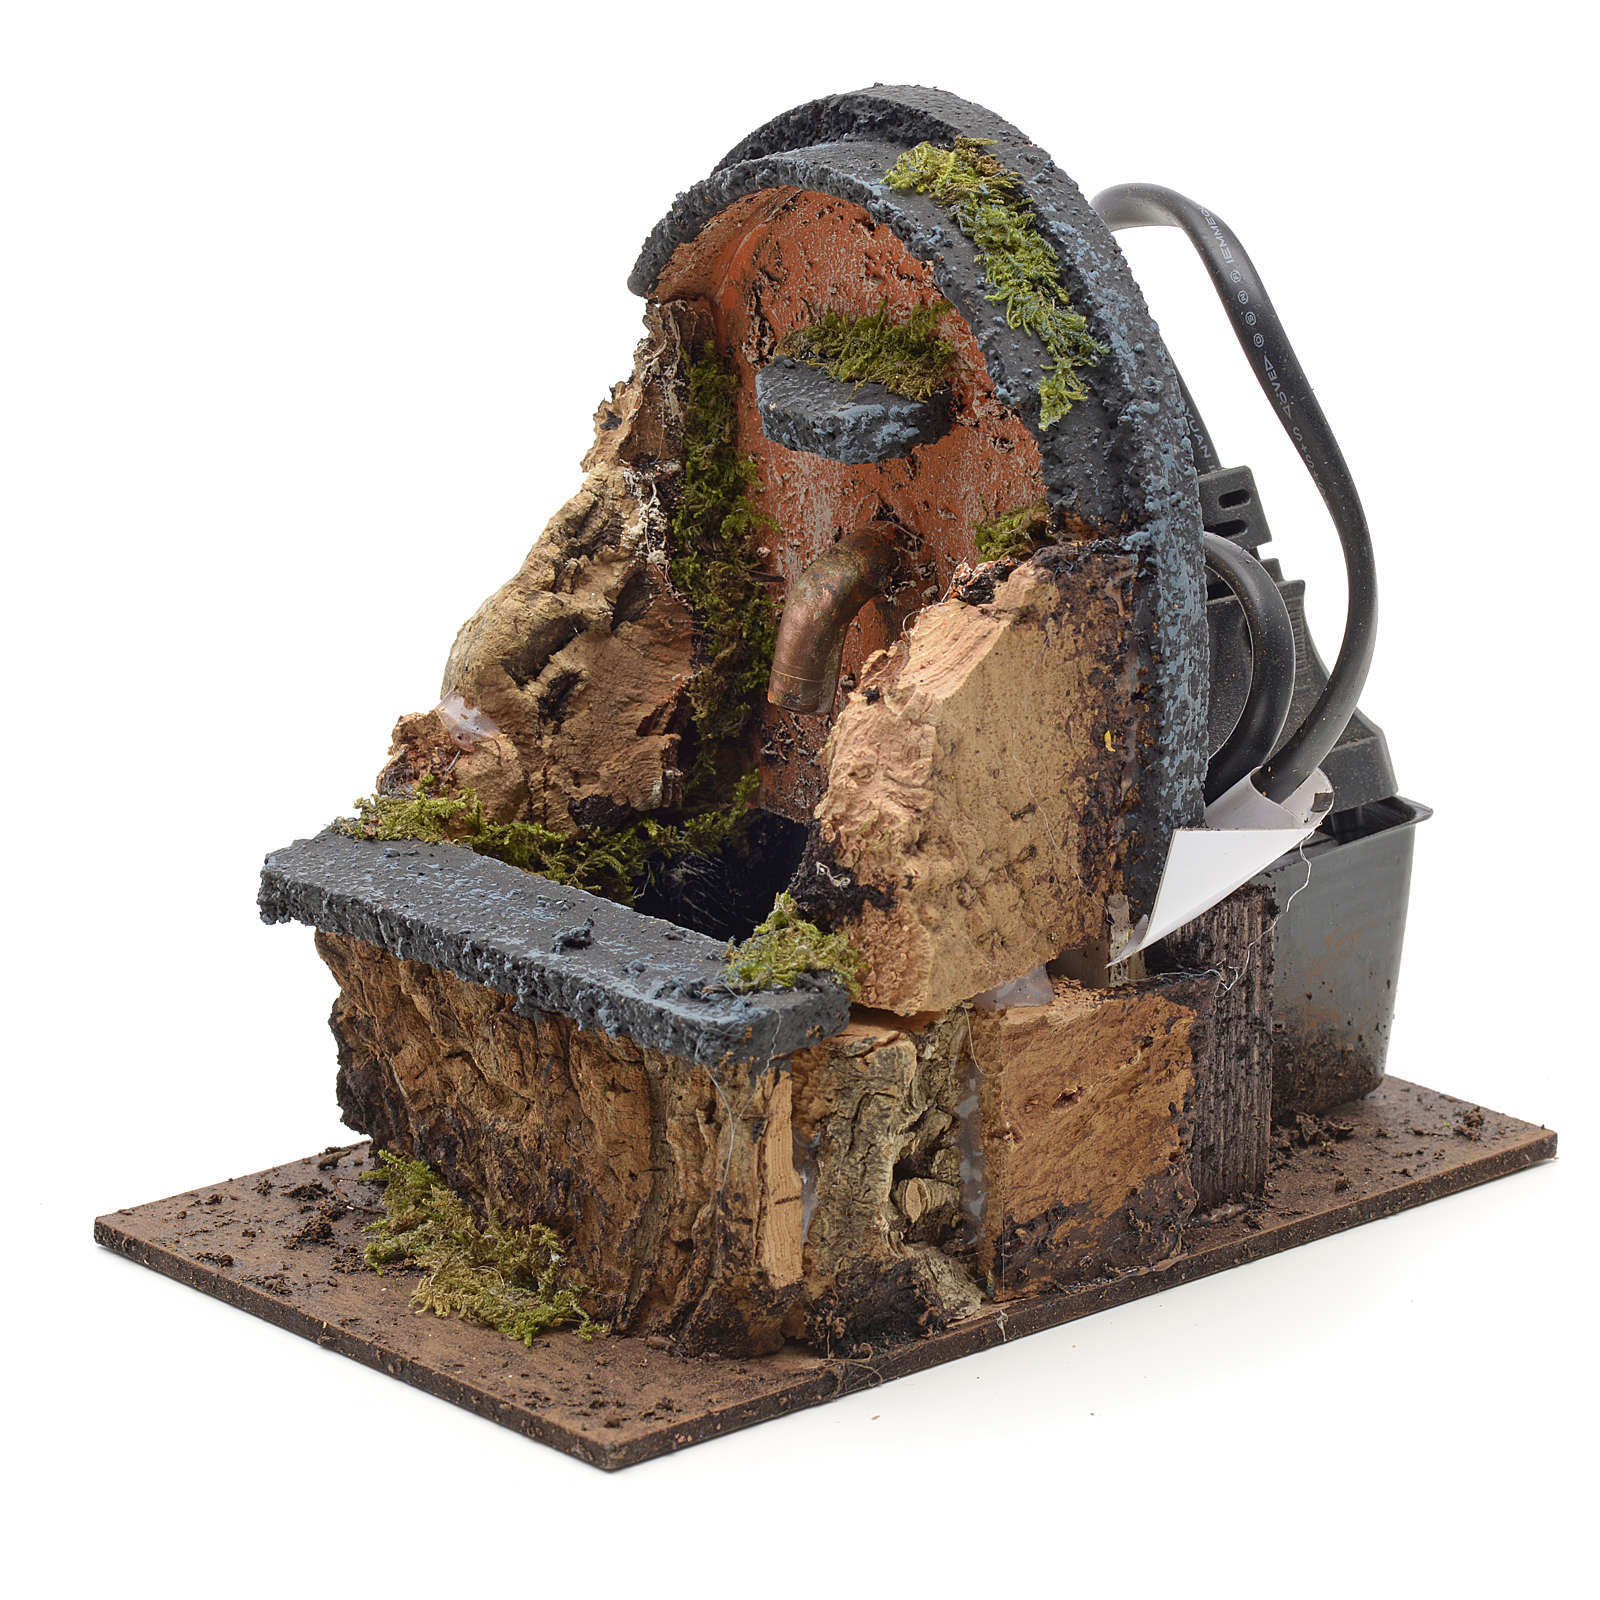 Electric nativity fountain measuring 15x10x12cm with arch 4